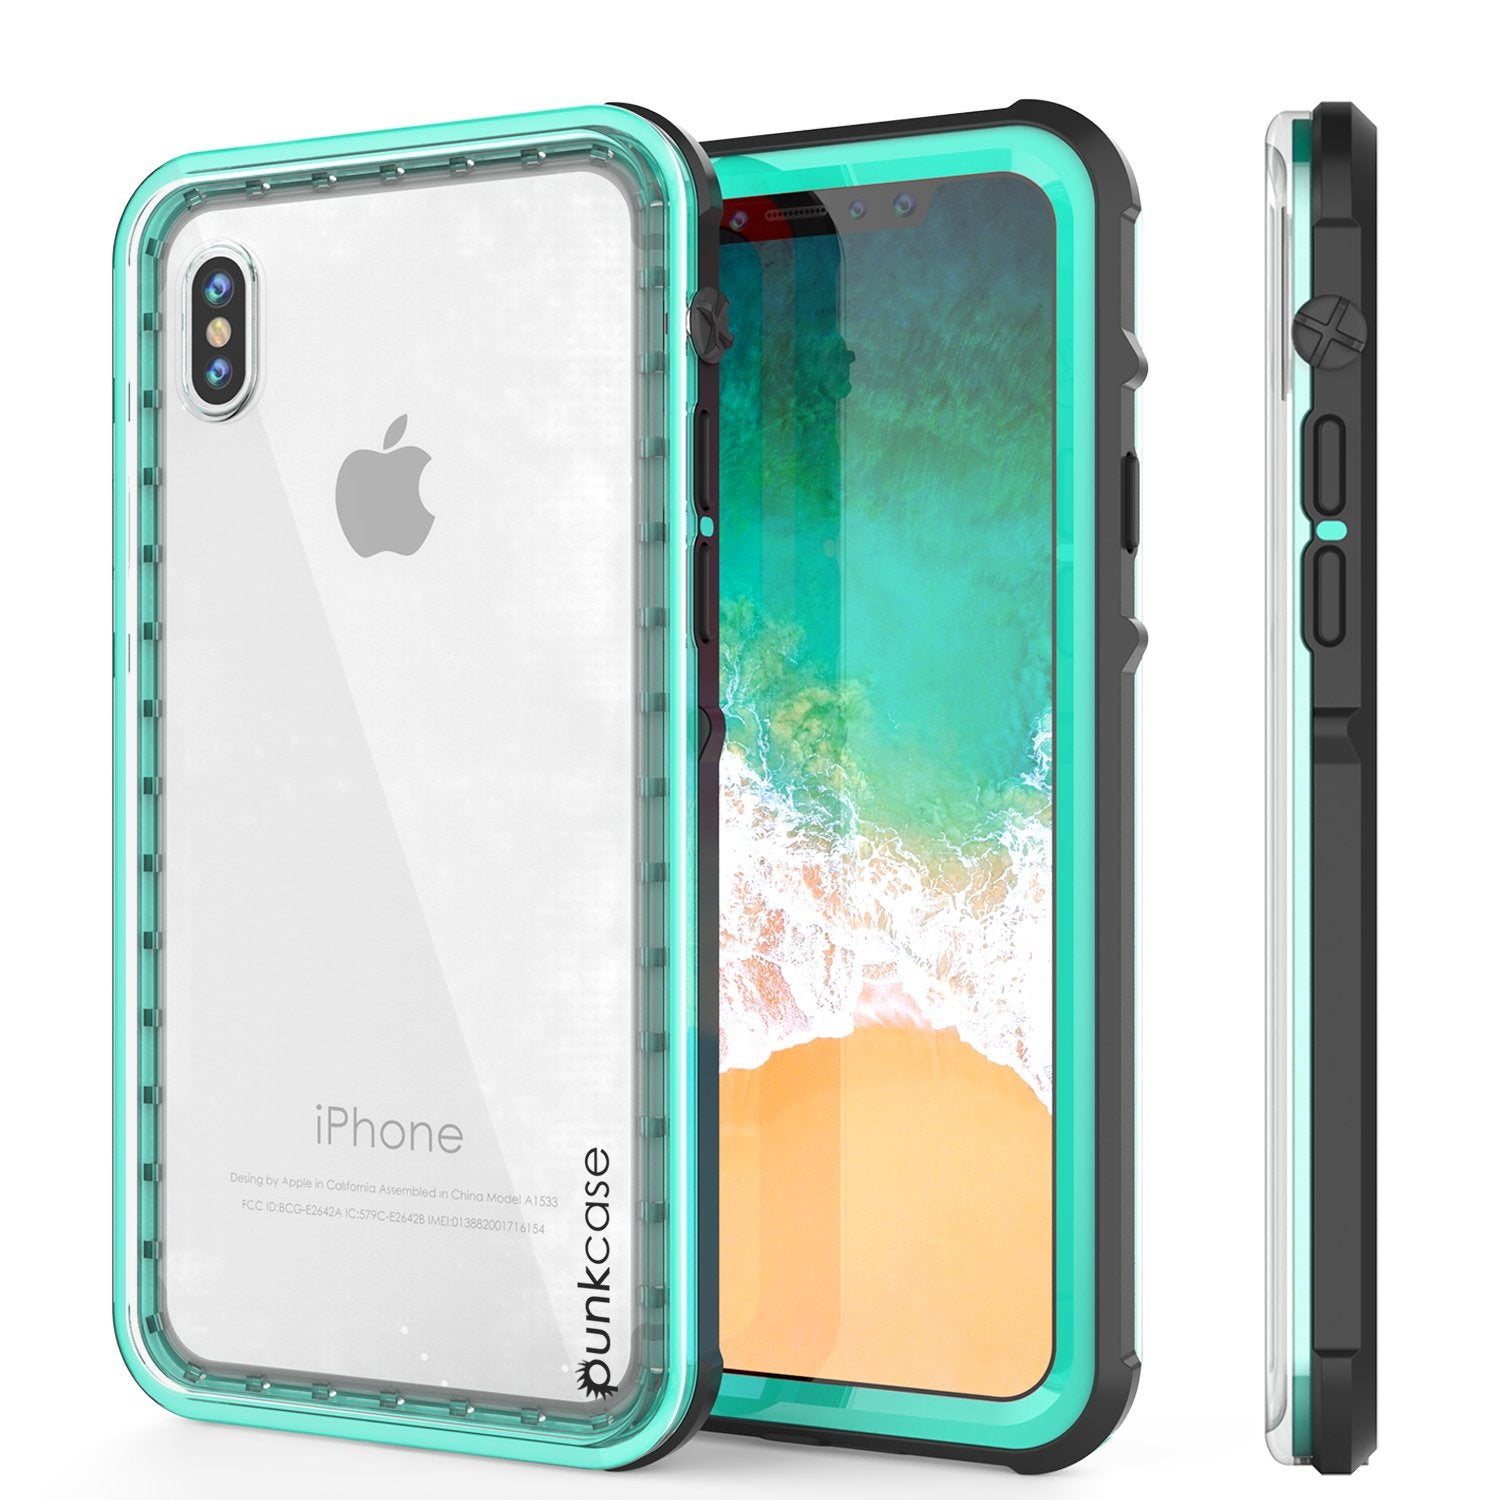 iPhone XS Max Case, PUNKCase [CRYSTAL SERIES] Protective IP68 Certified, Ultra Slim Fit [TEAL]